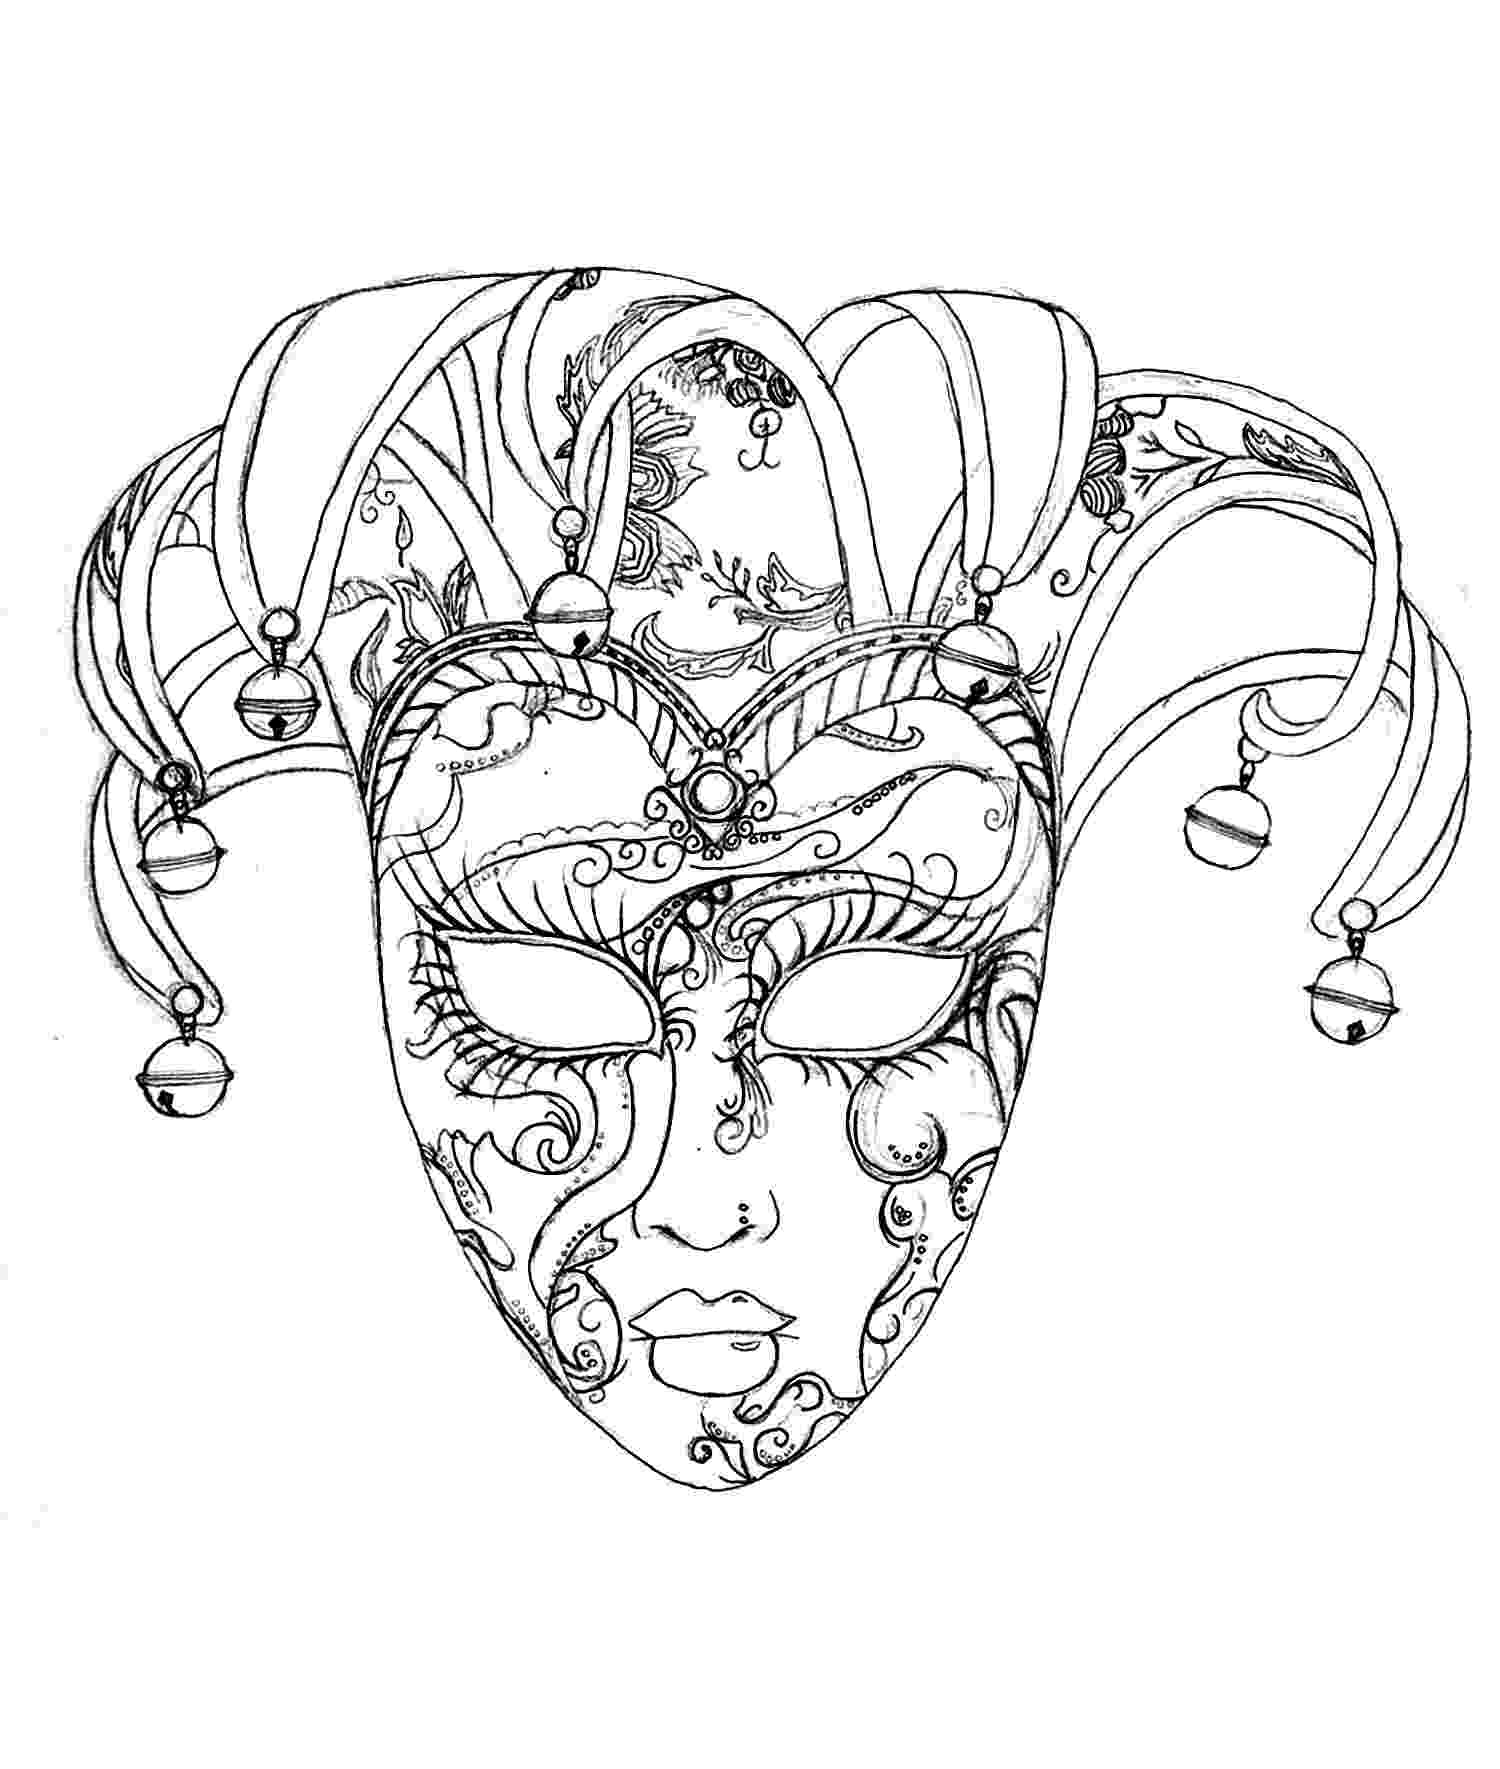 carnival mask coloring page beautiful lady in carnival mask coloring page free carnival mask page coloring